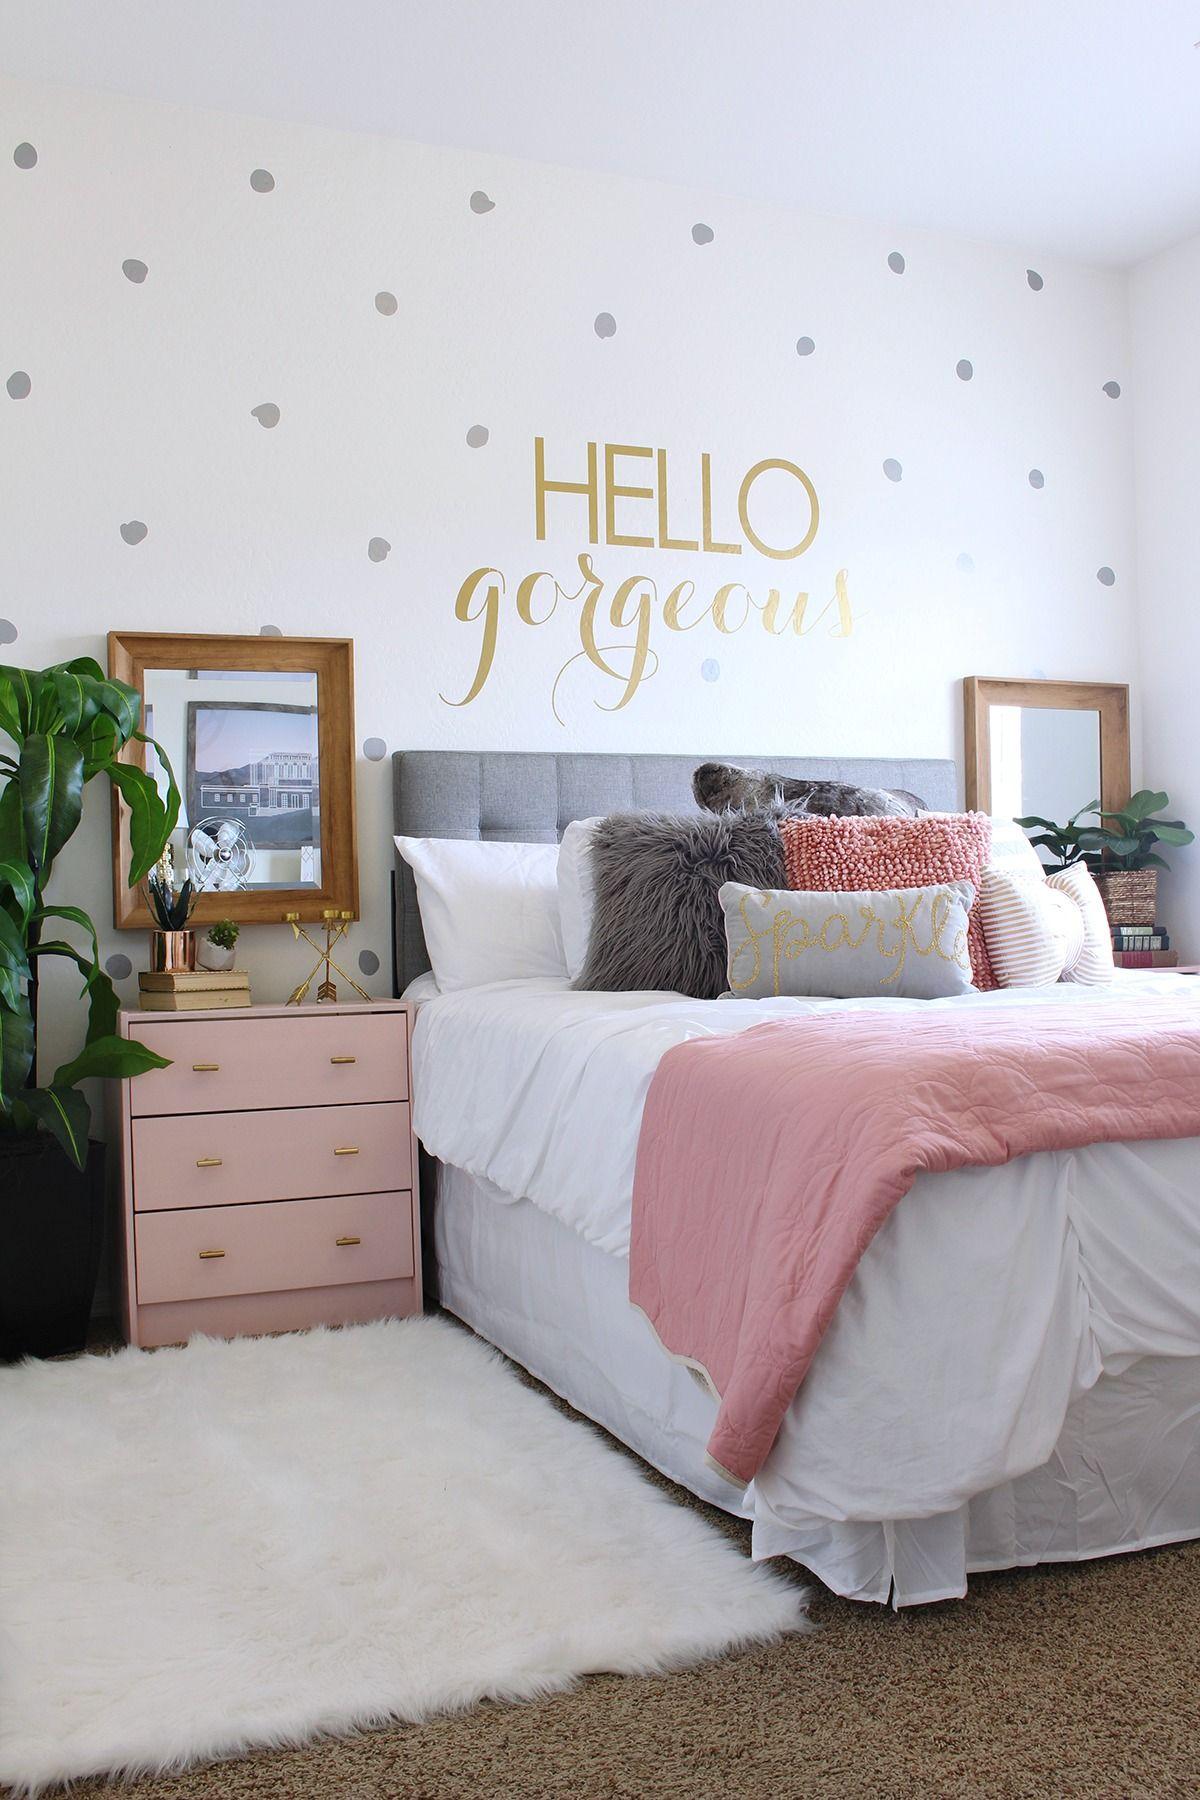 Girls Bedroom Paint Ideas Polka Dots surprise teen girl's bedroom makeover | pink nightstands, teen